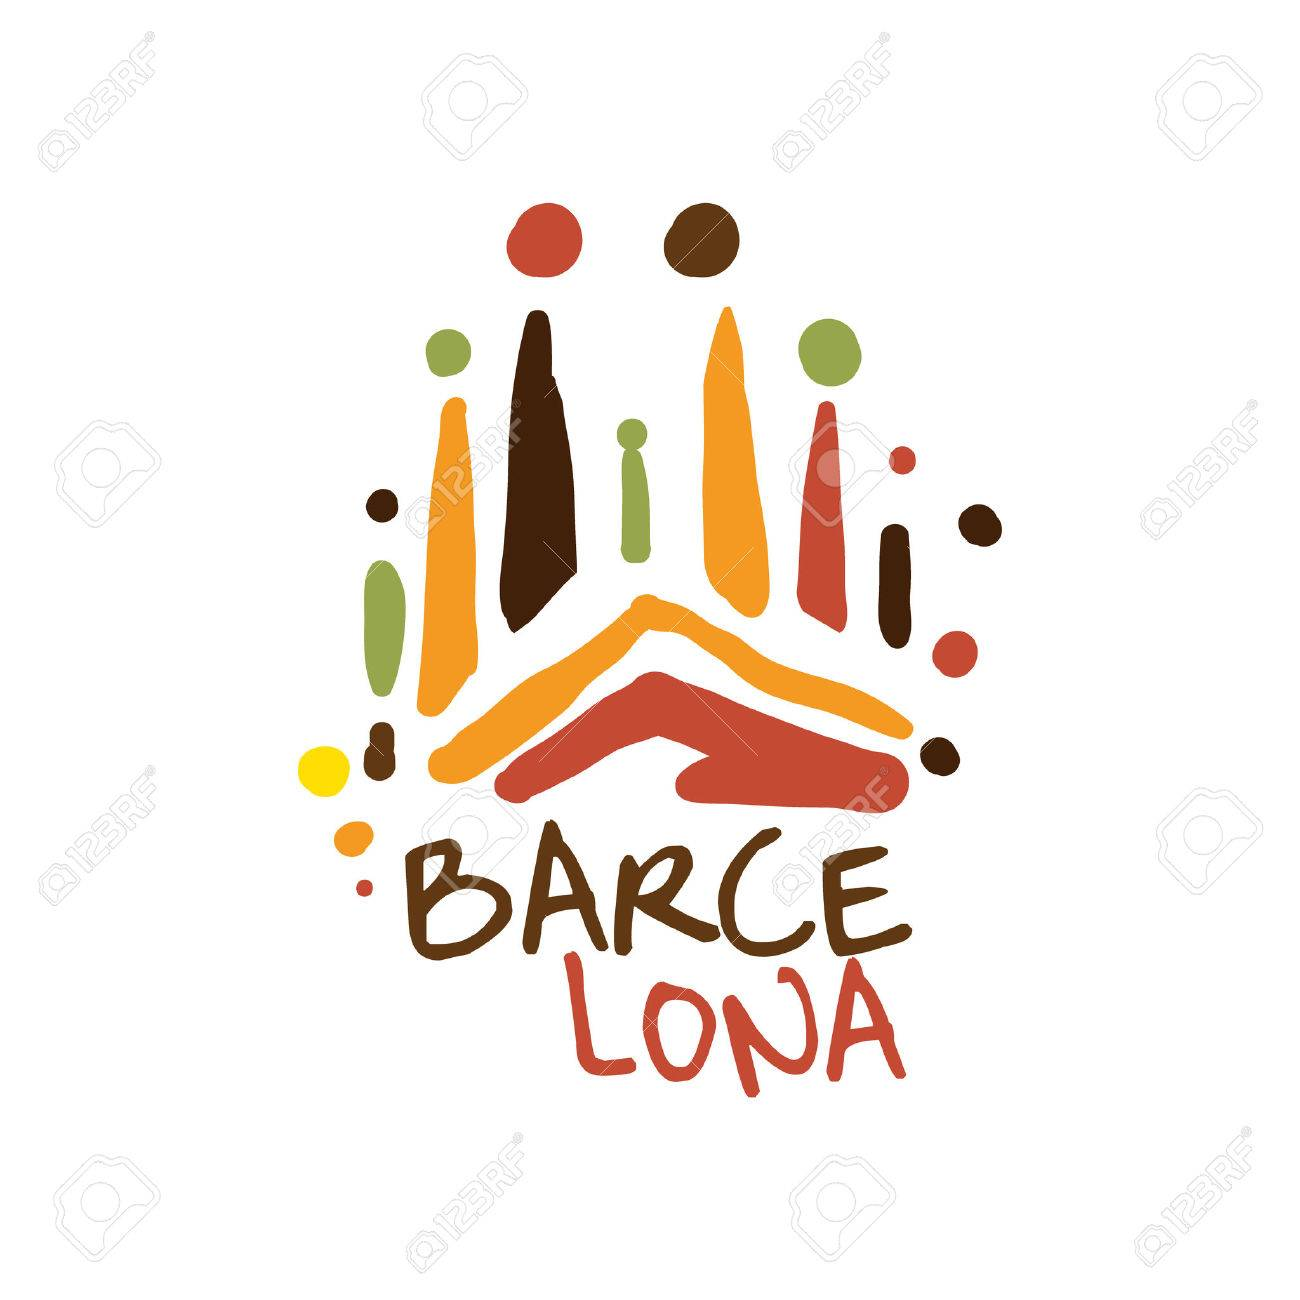 Barcelona tourism logo template hand drawn vector illustration barcelona tourism logo template hand drawn vector illustration for travel agency tour guide sticker pronofoot35fo Image collections